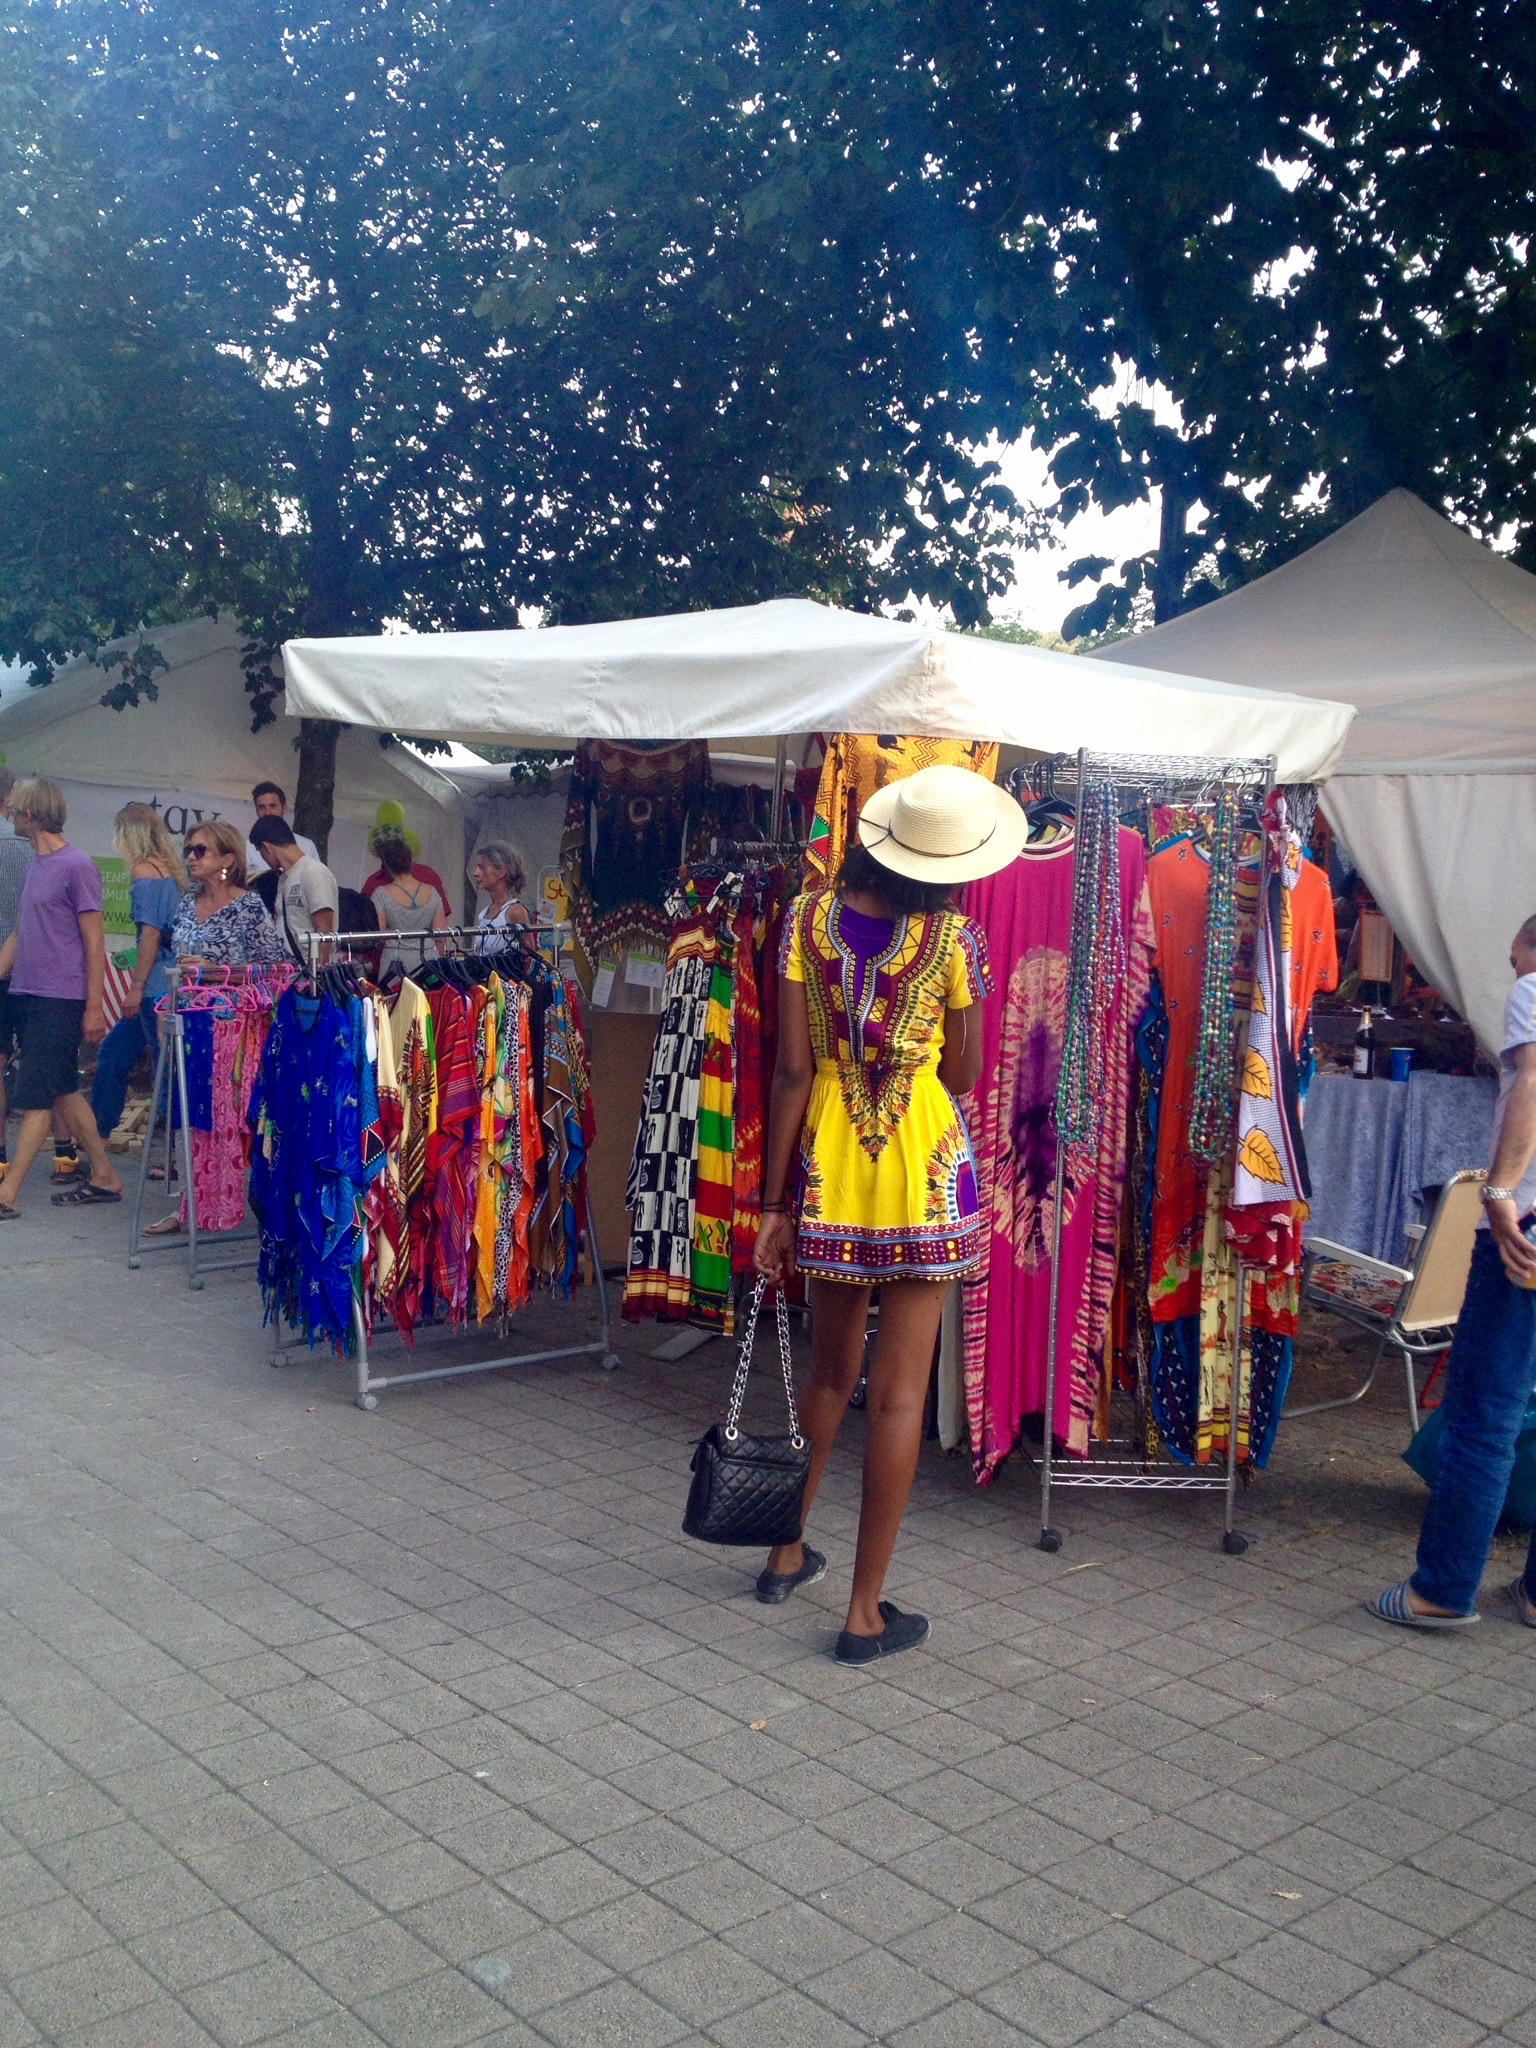 Colorful dressing and shirts for sale